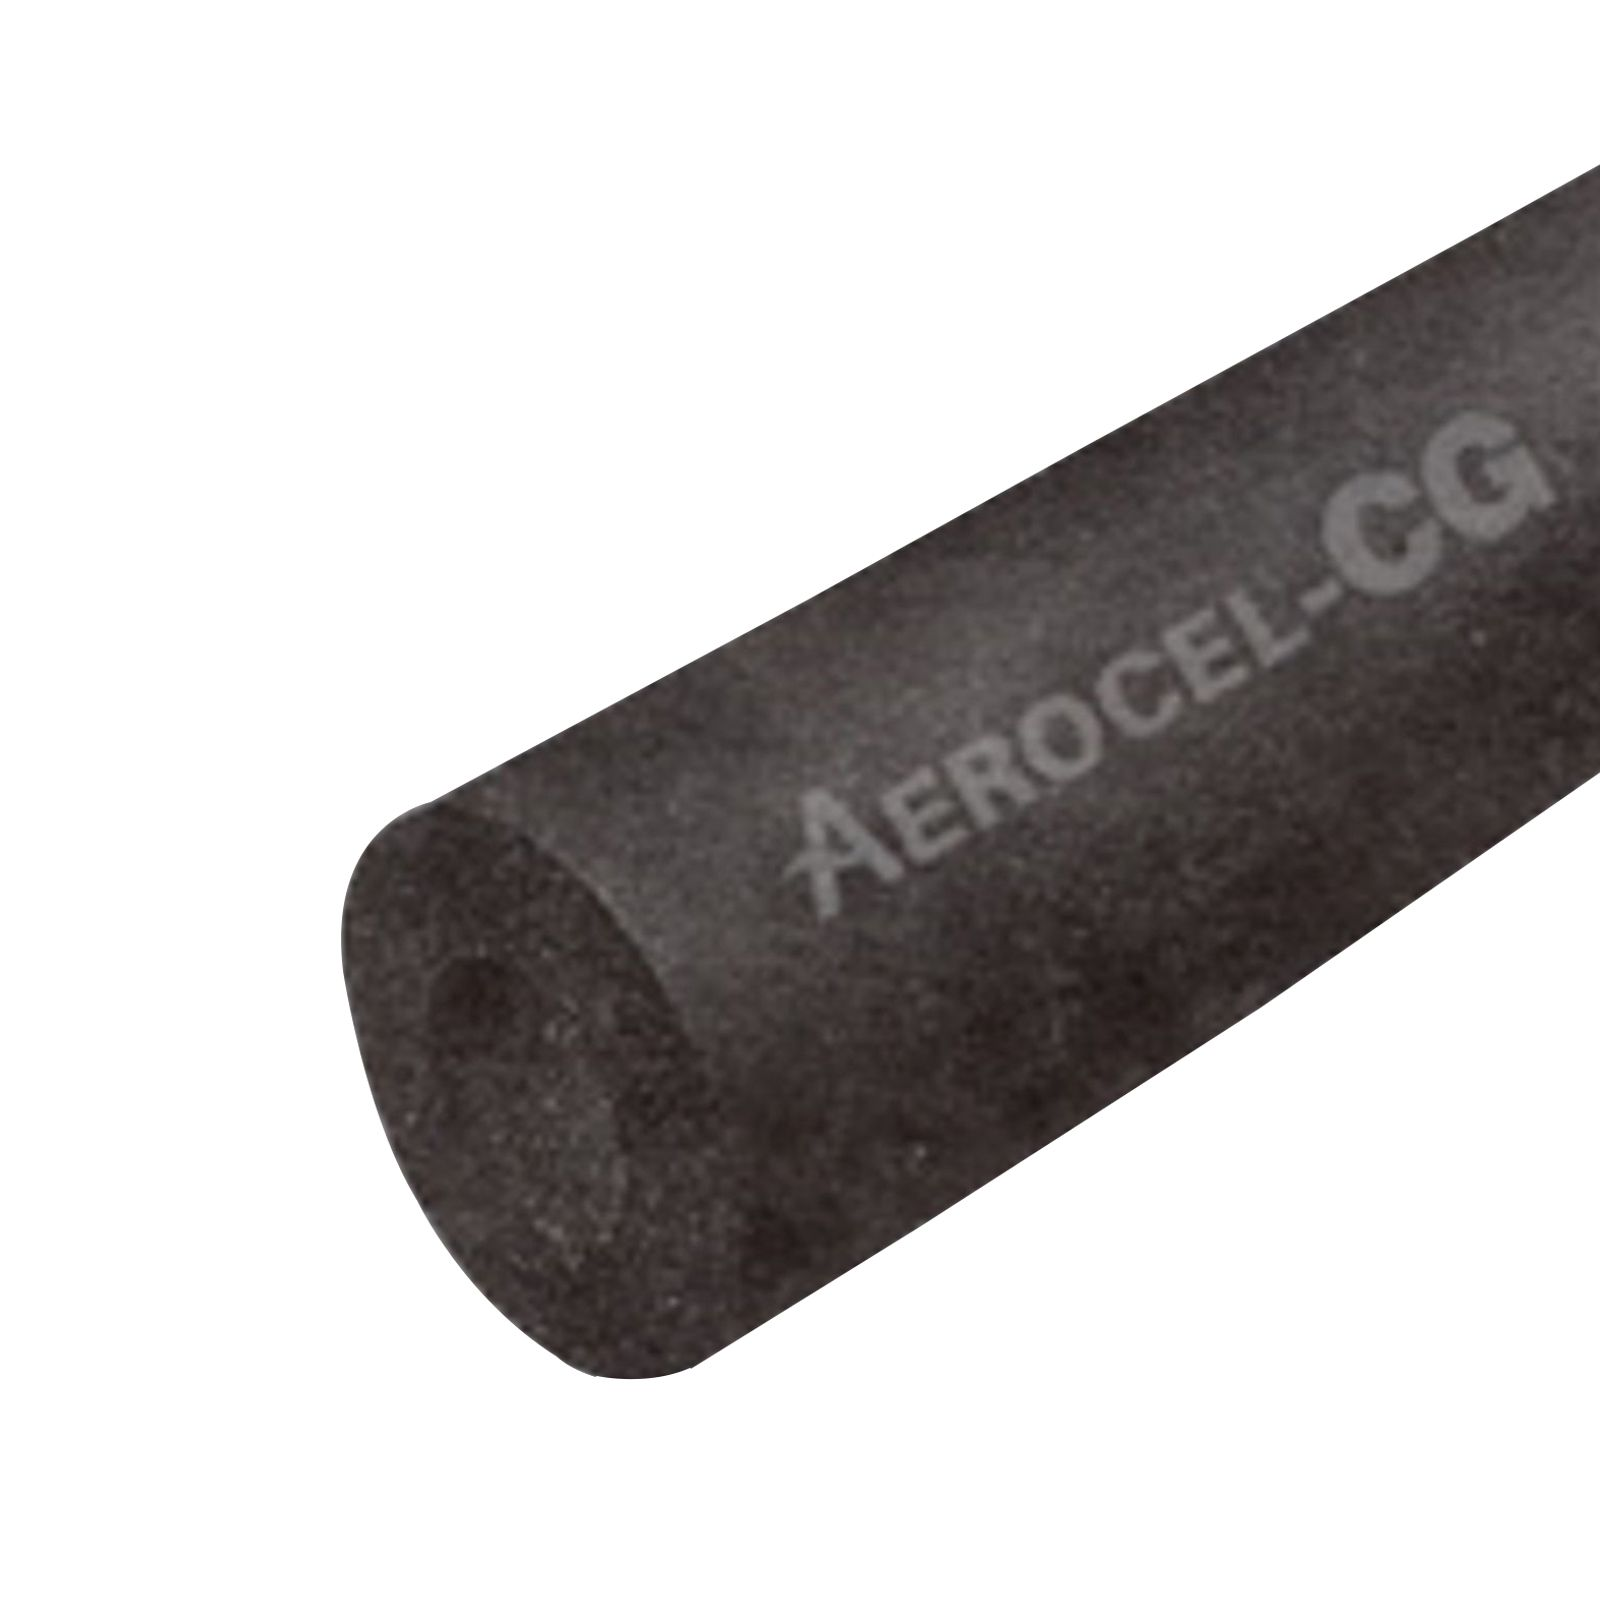 "Aeroflex CG11812 - Elastomeric Tubing Insulation, 1-1/8"" ID X 1/2"" Wall Thickness, Fits 1-1/8"" OD Tubing"